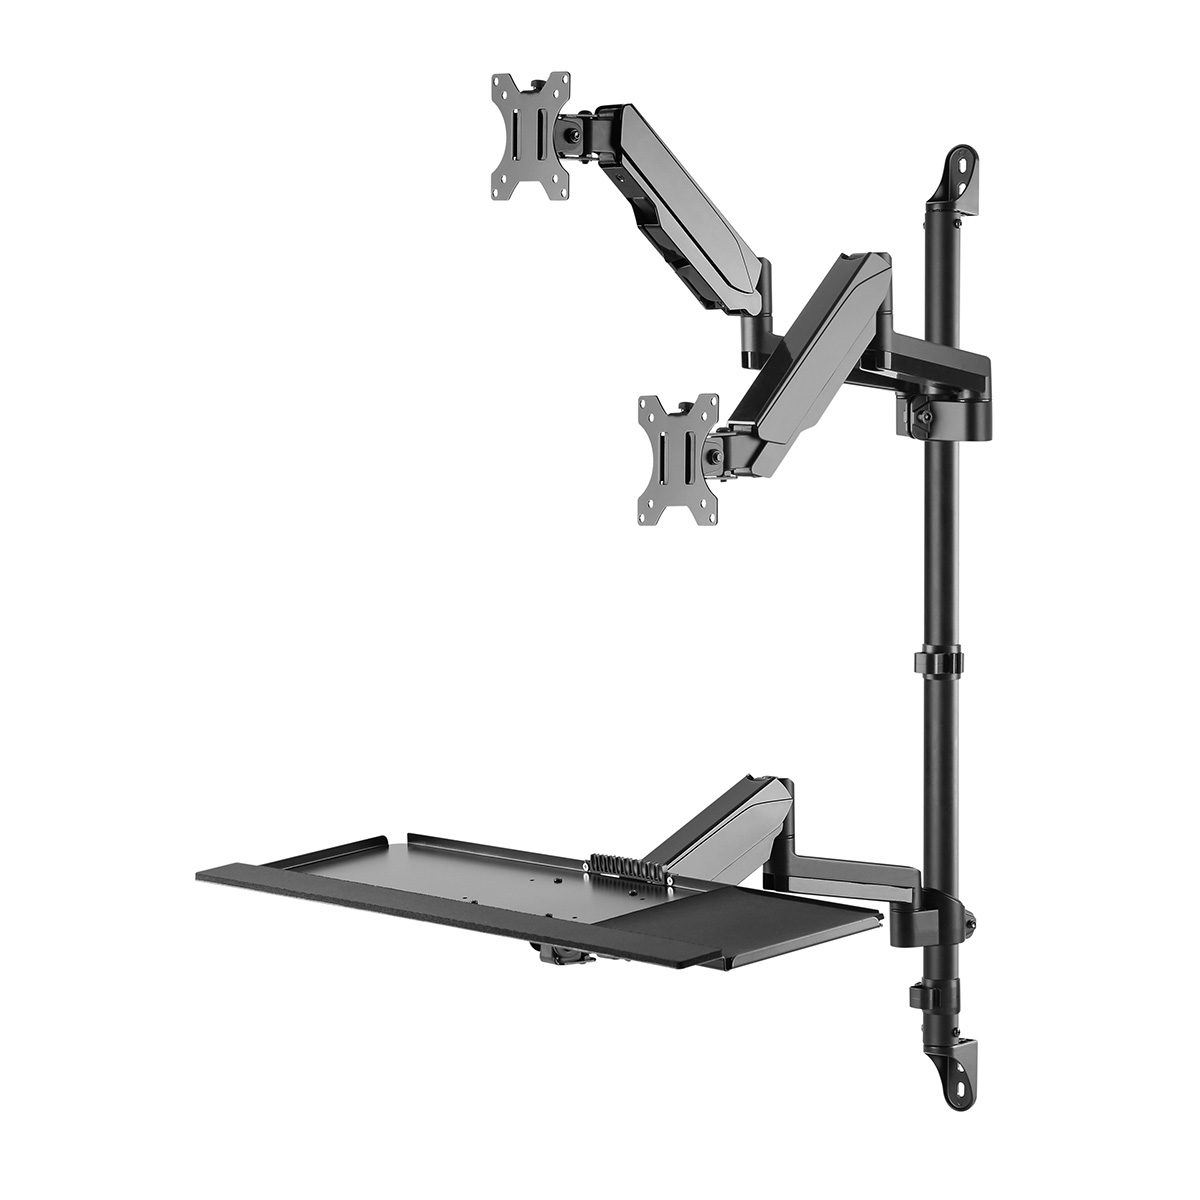 WMP-1332D Dual Display Wall Mount Workstation